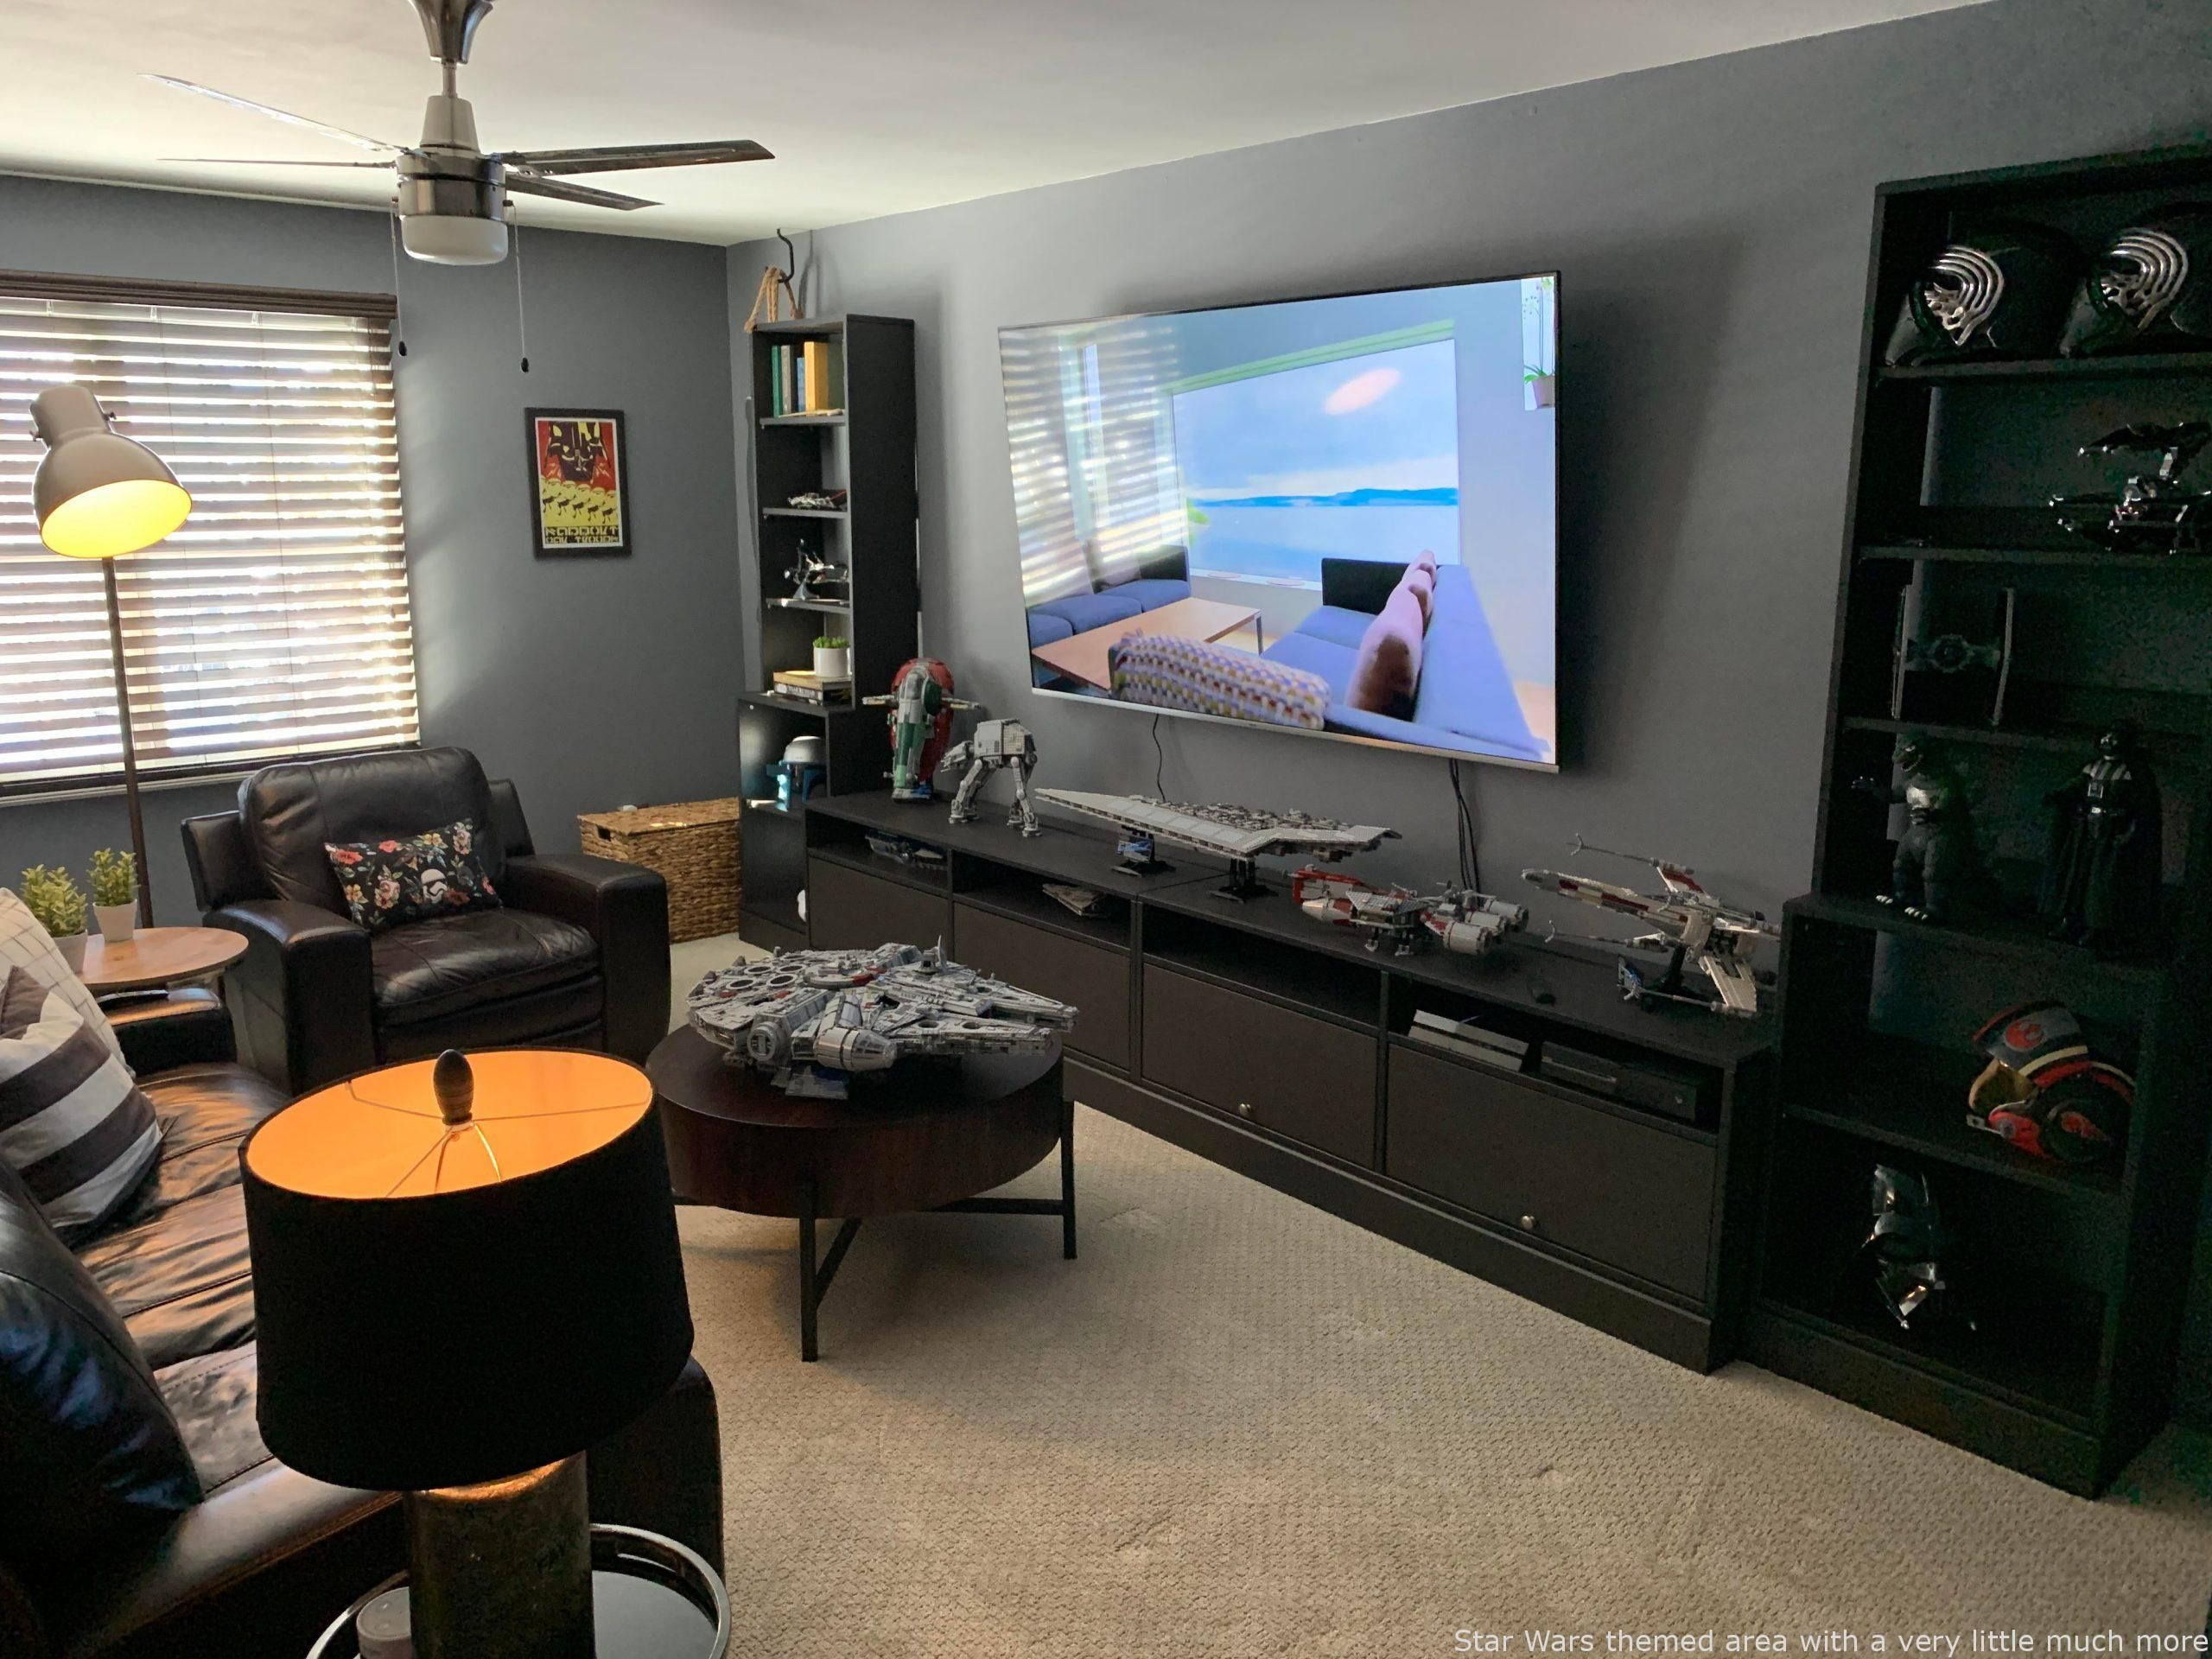 Star Wars themed home with a small a lot more operate to complete   Star Wars themed home with a small a lot more operate to complete  incredible man cave  for a man cav...